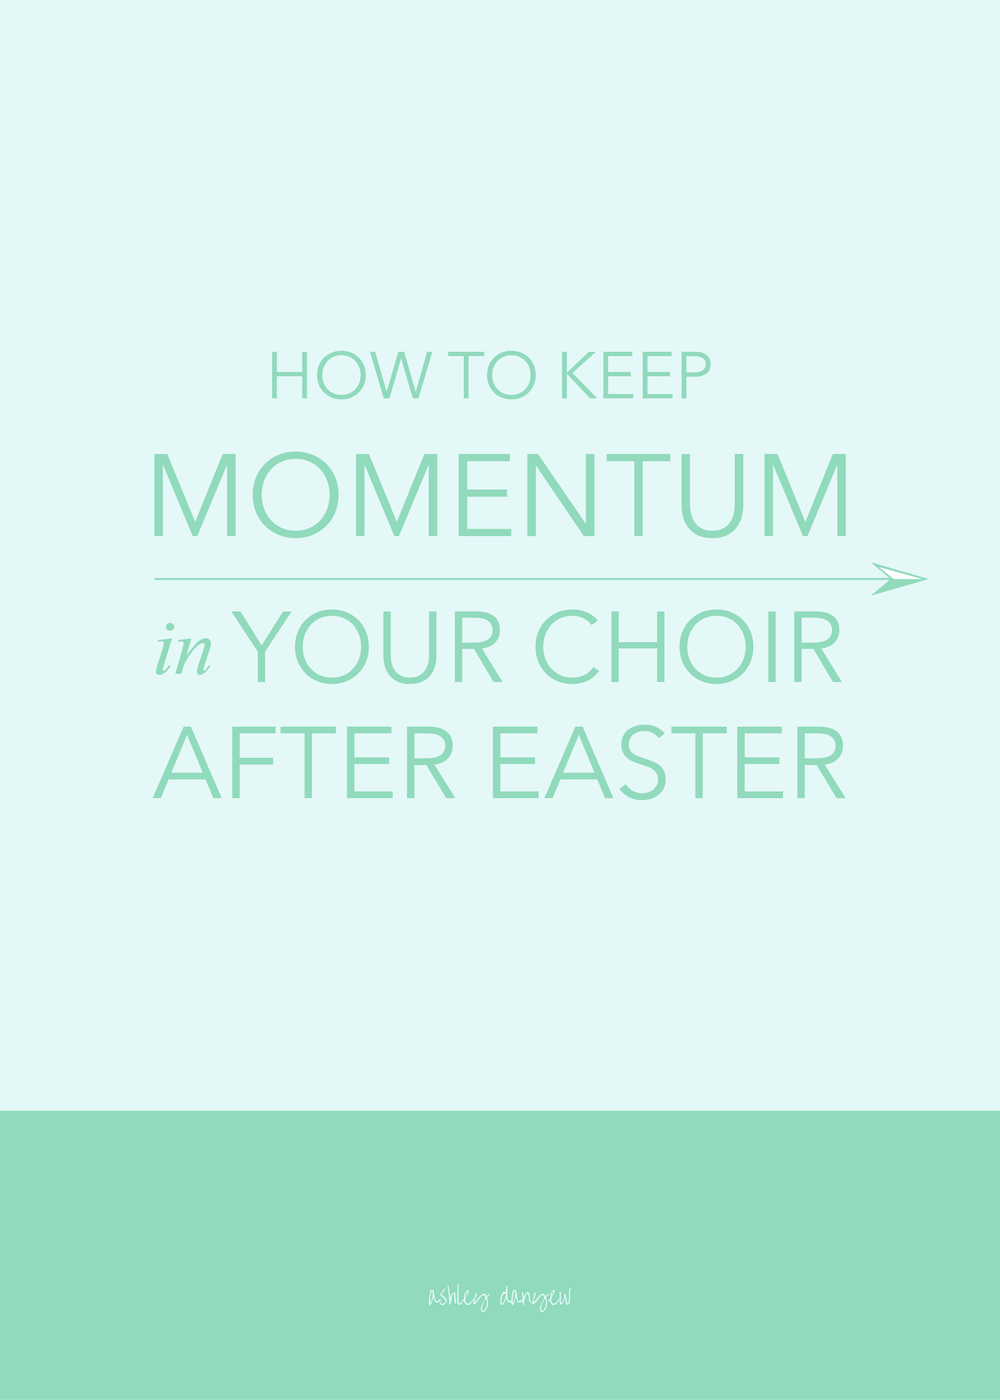 How-to-Keep-Momentum-In-Your-Choir-After-Easter-01.png